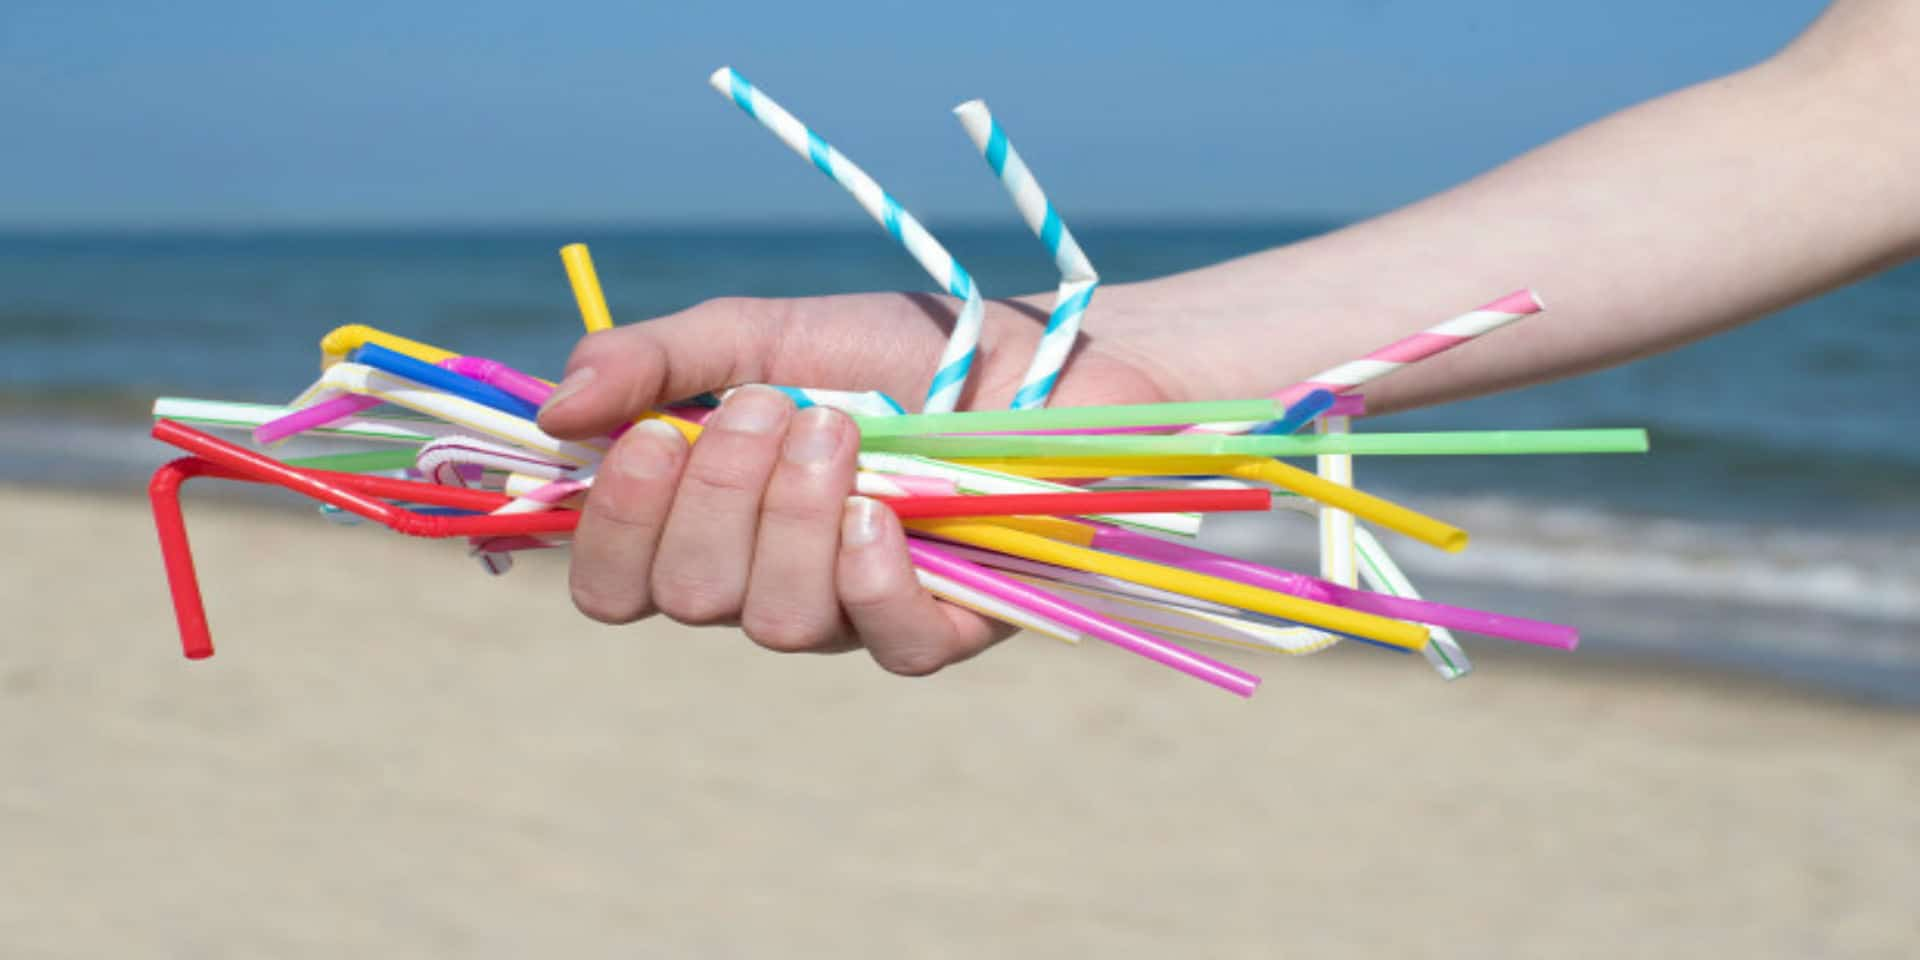 The last straw: Sands China stops using plastic straws at properties